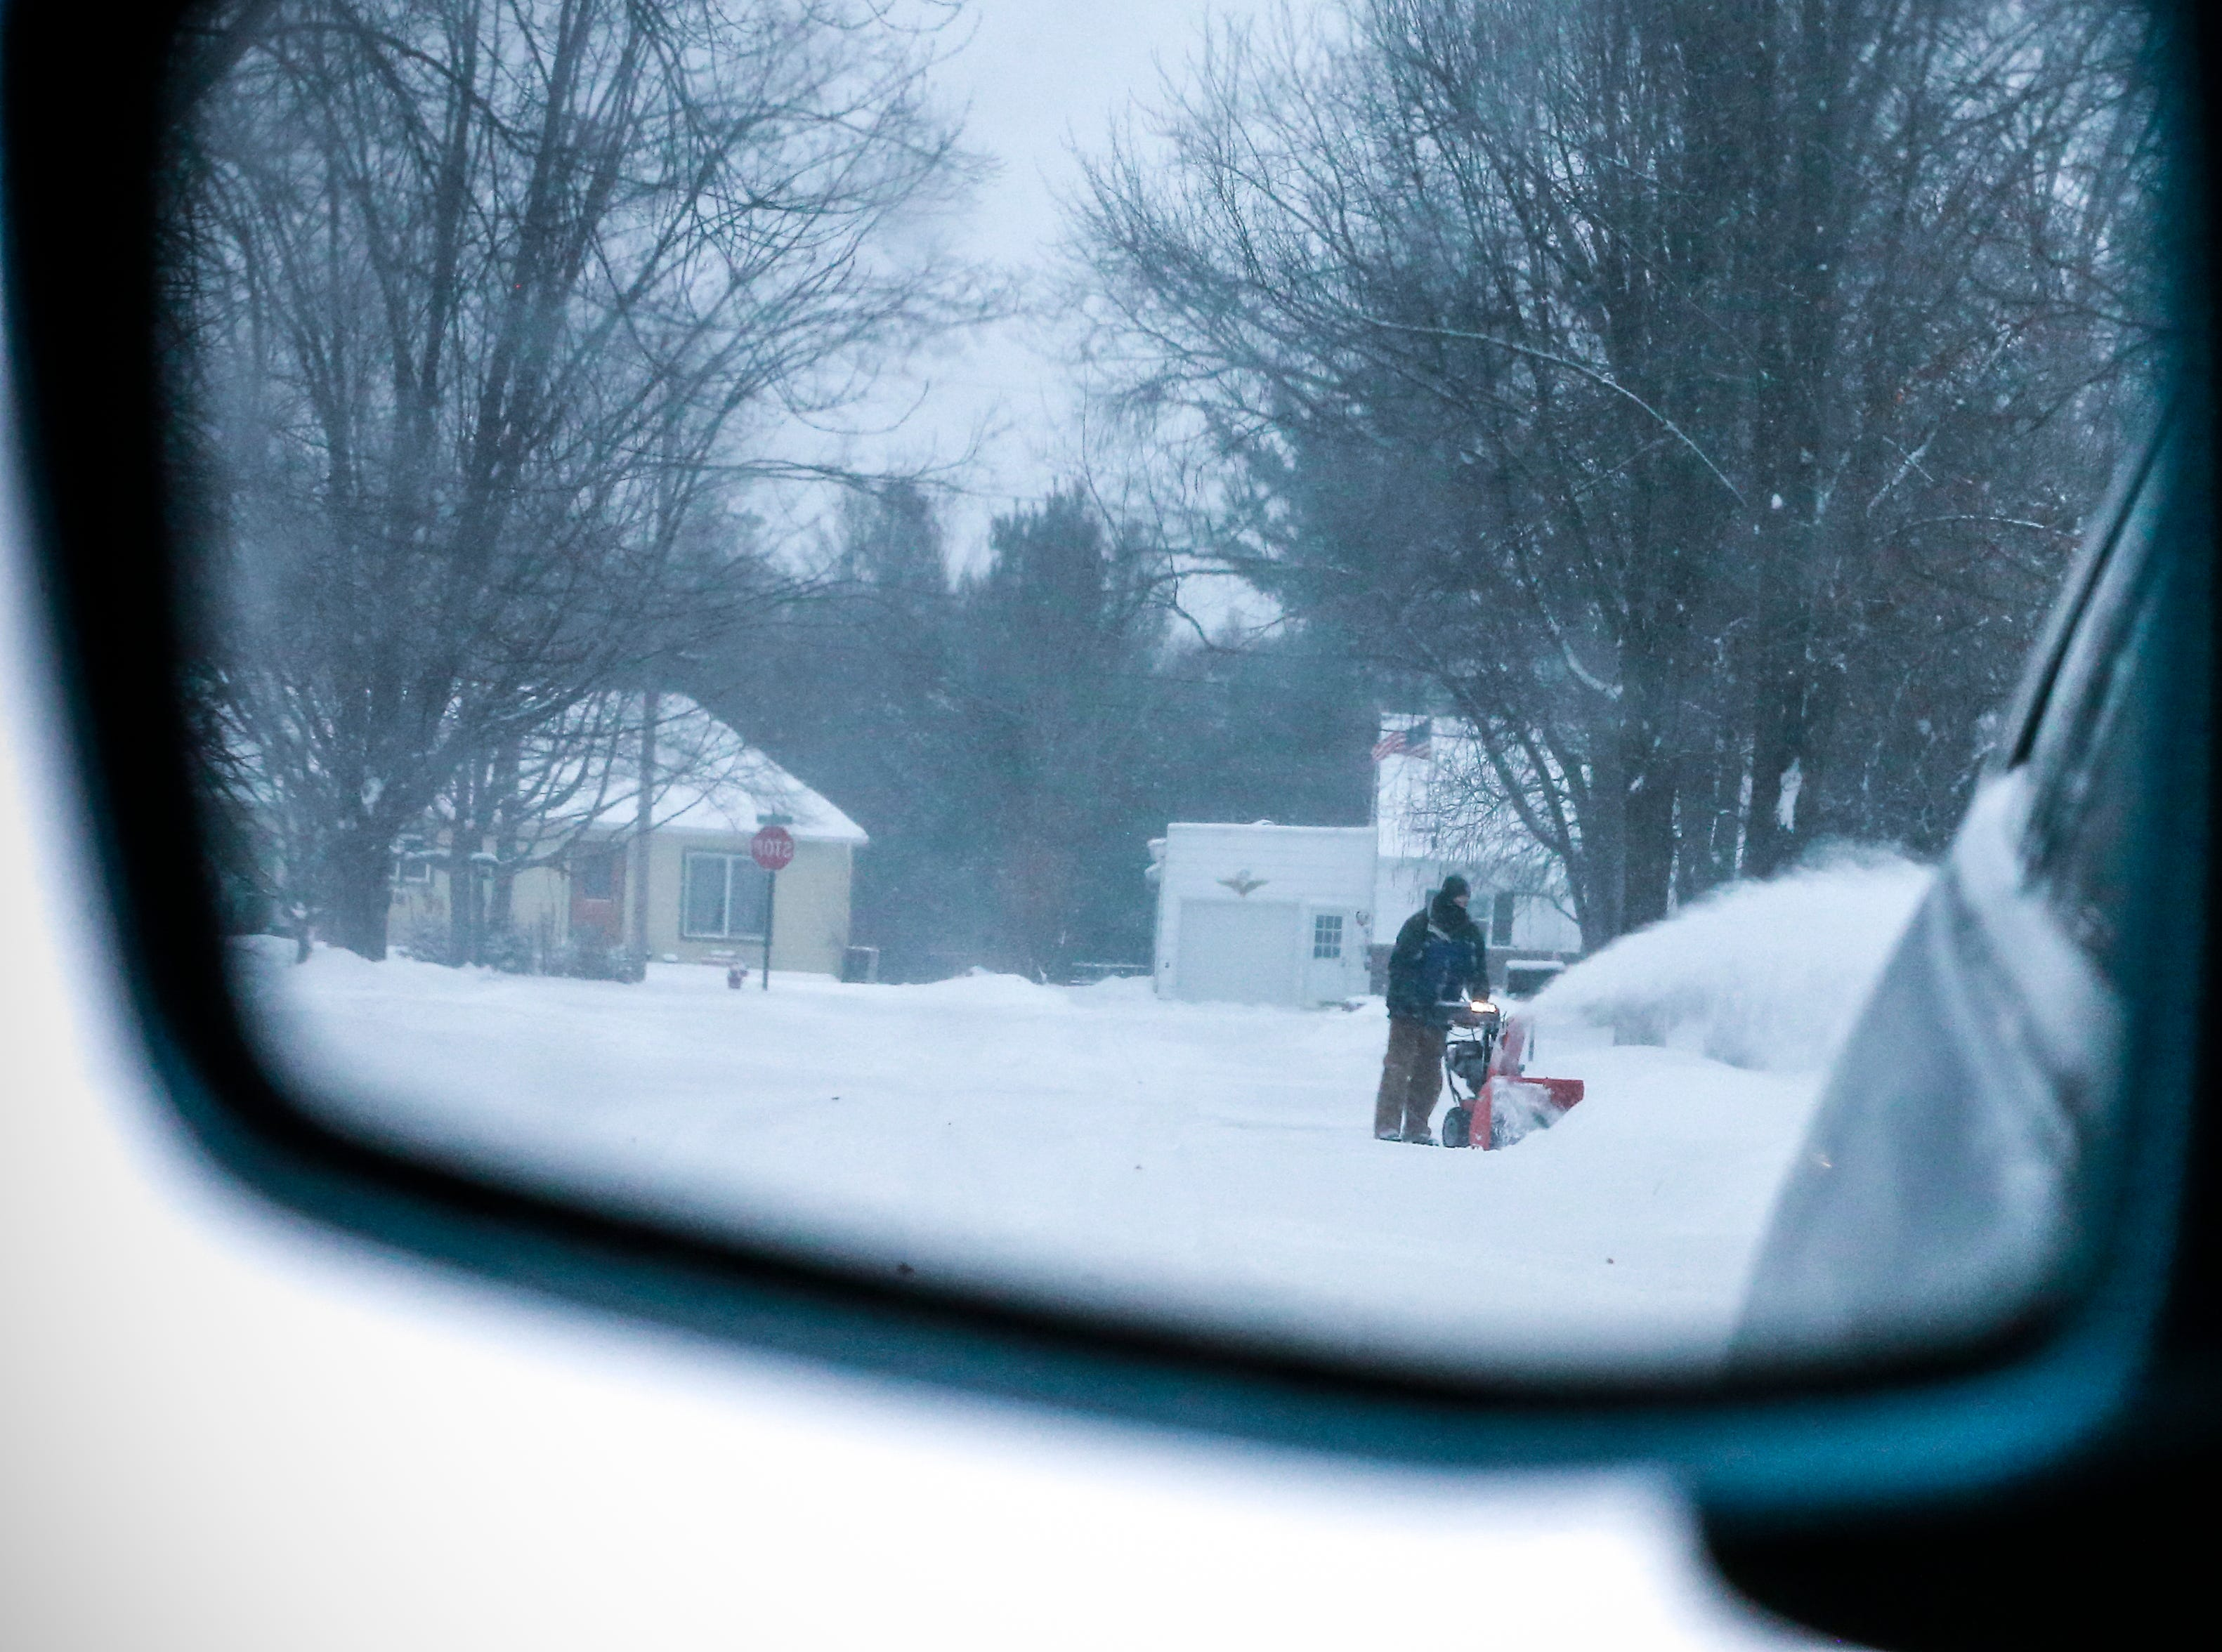 Tom Schnider operates his snowblower to clear snow off his driveway after a snowstorm Monday, Jan. 28, 2019, in Wausau, Wis.